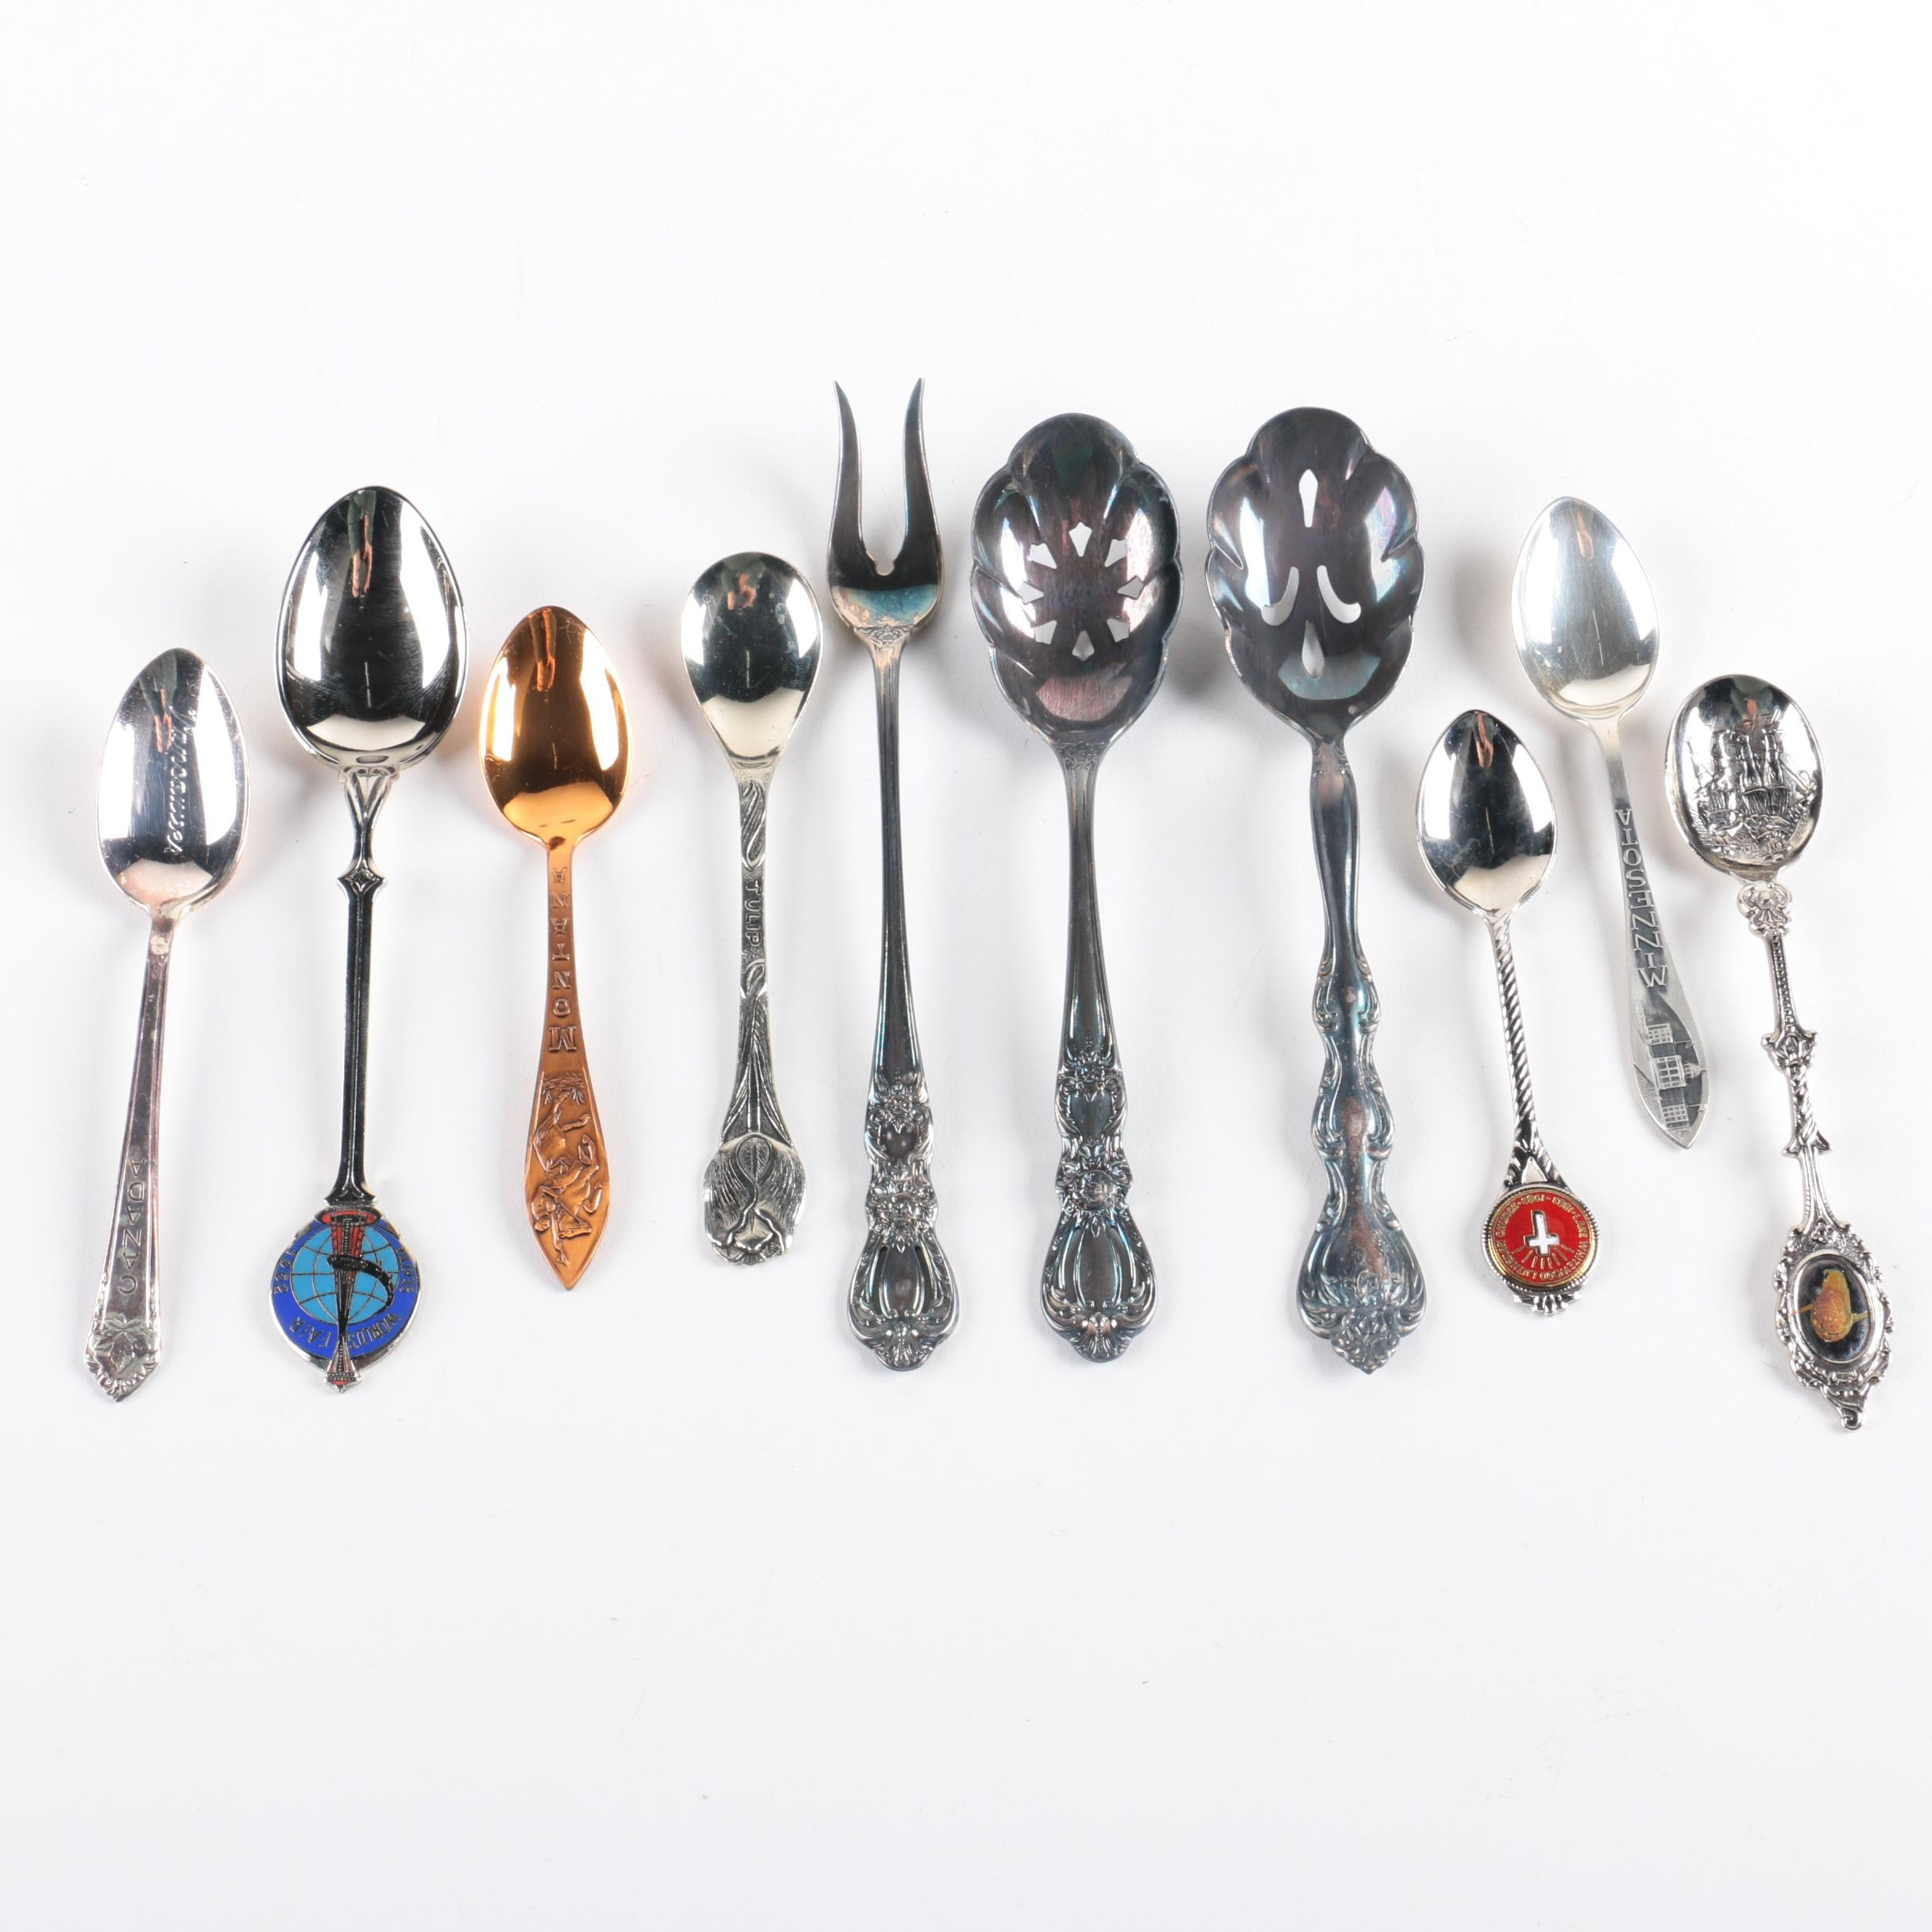 The Robbins Co. Sterling Souvenir Spoon with Silver-Plated and Metal Spoons